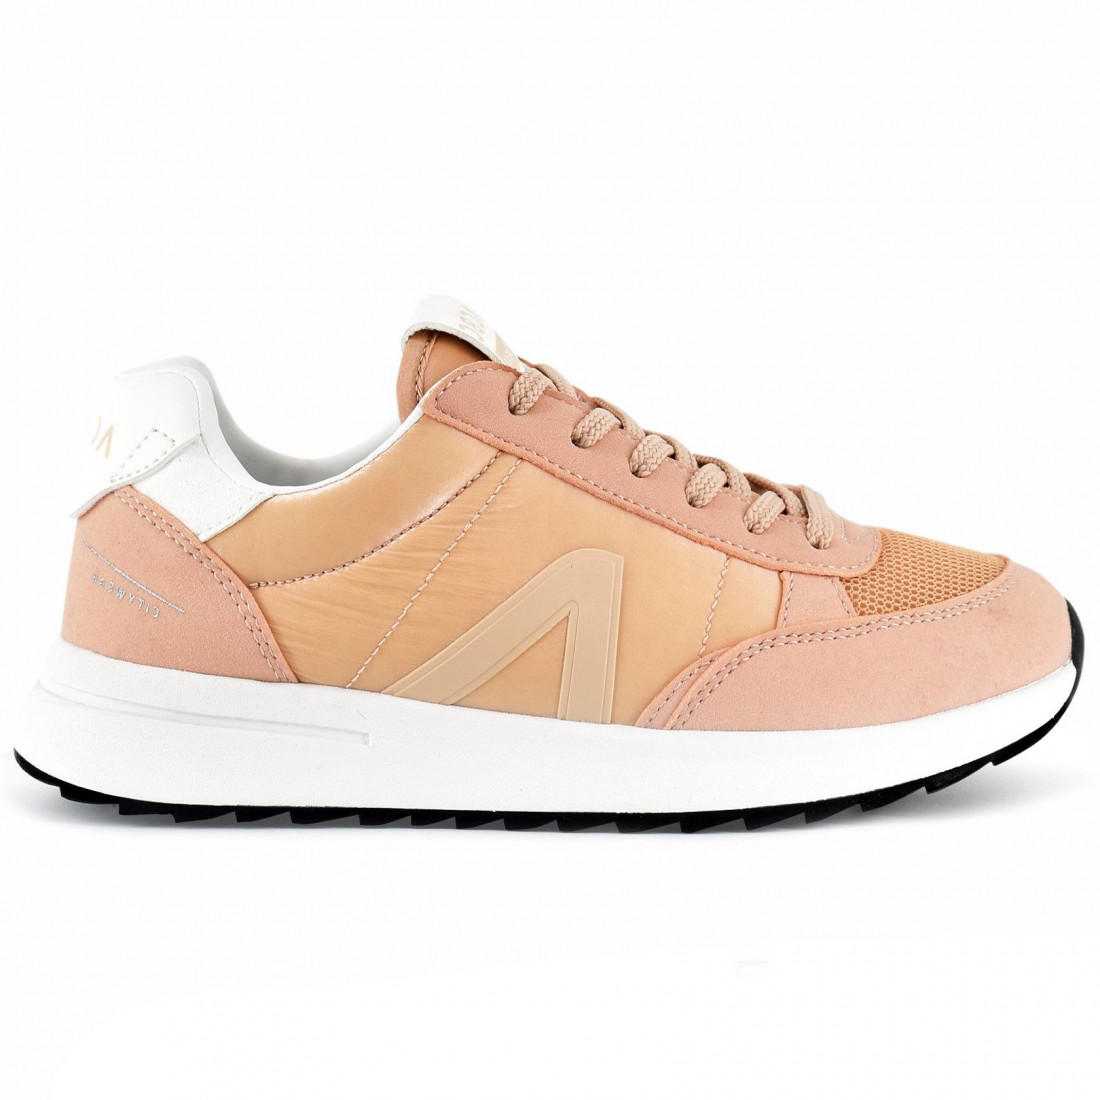 sneakers donna acbc shcw t605 8658